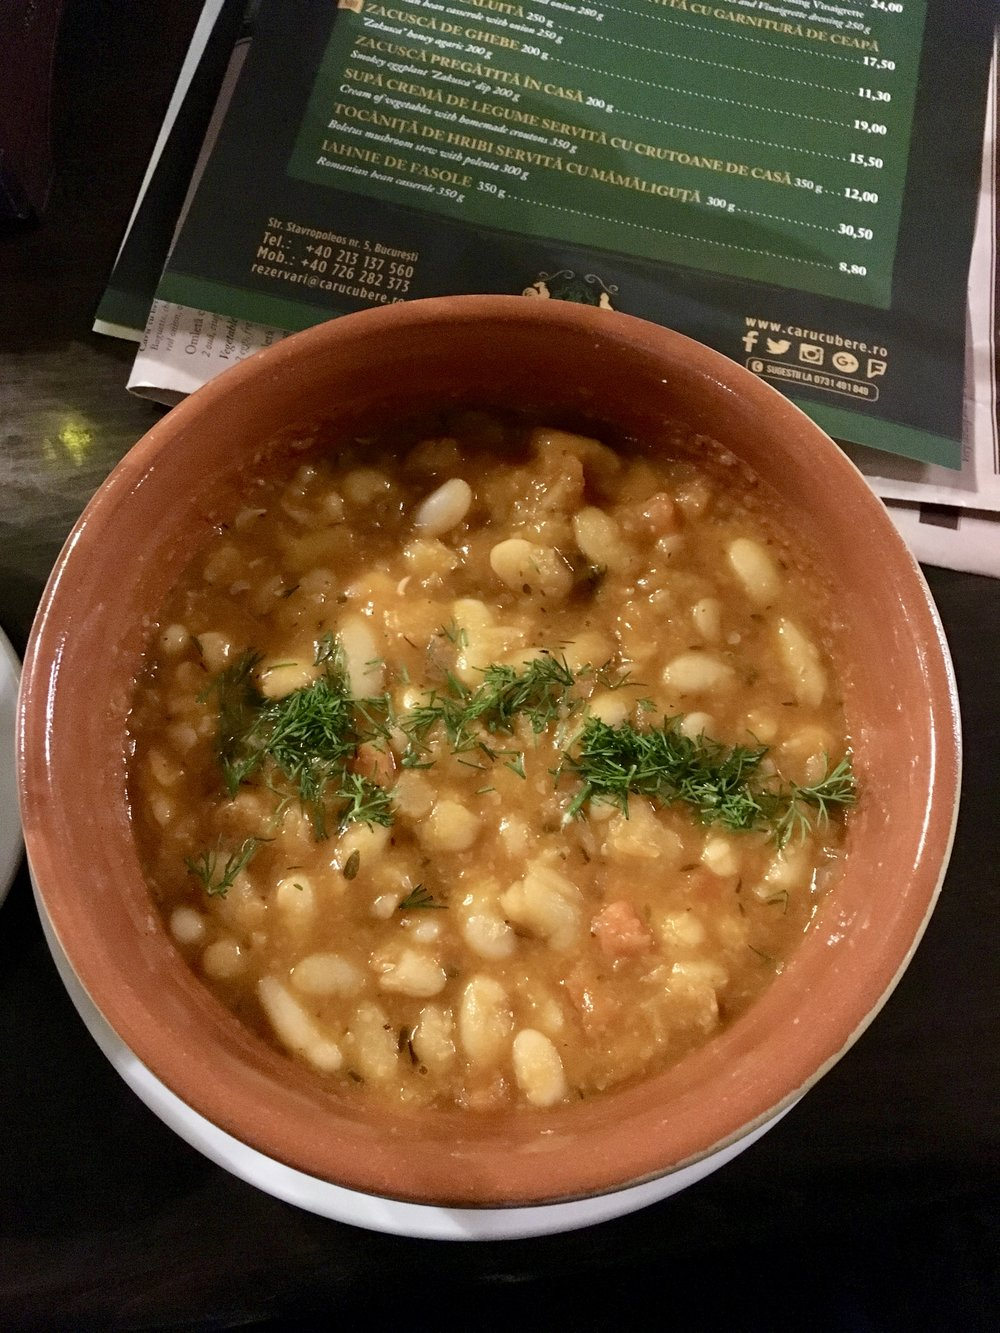 Bean cassoulet at Caru Cu Bere